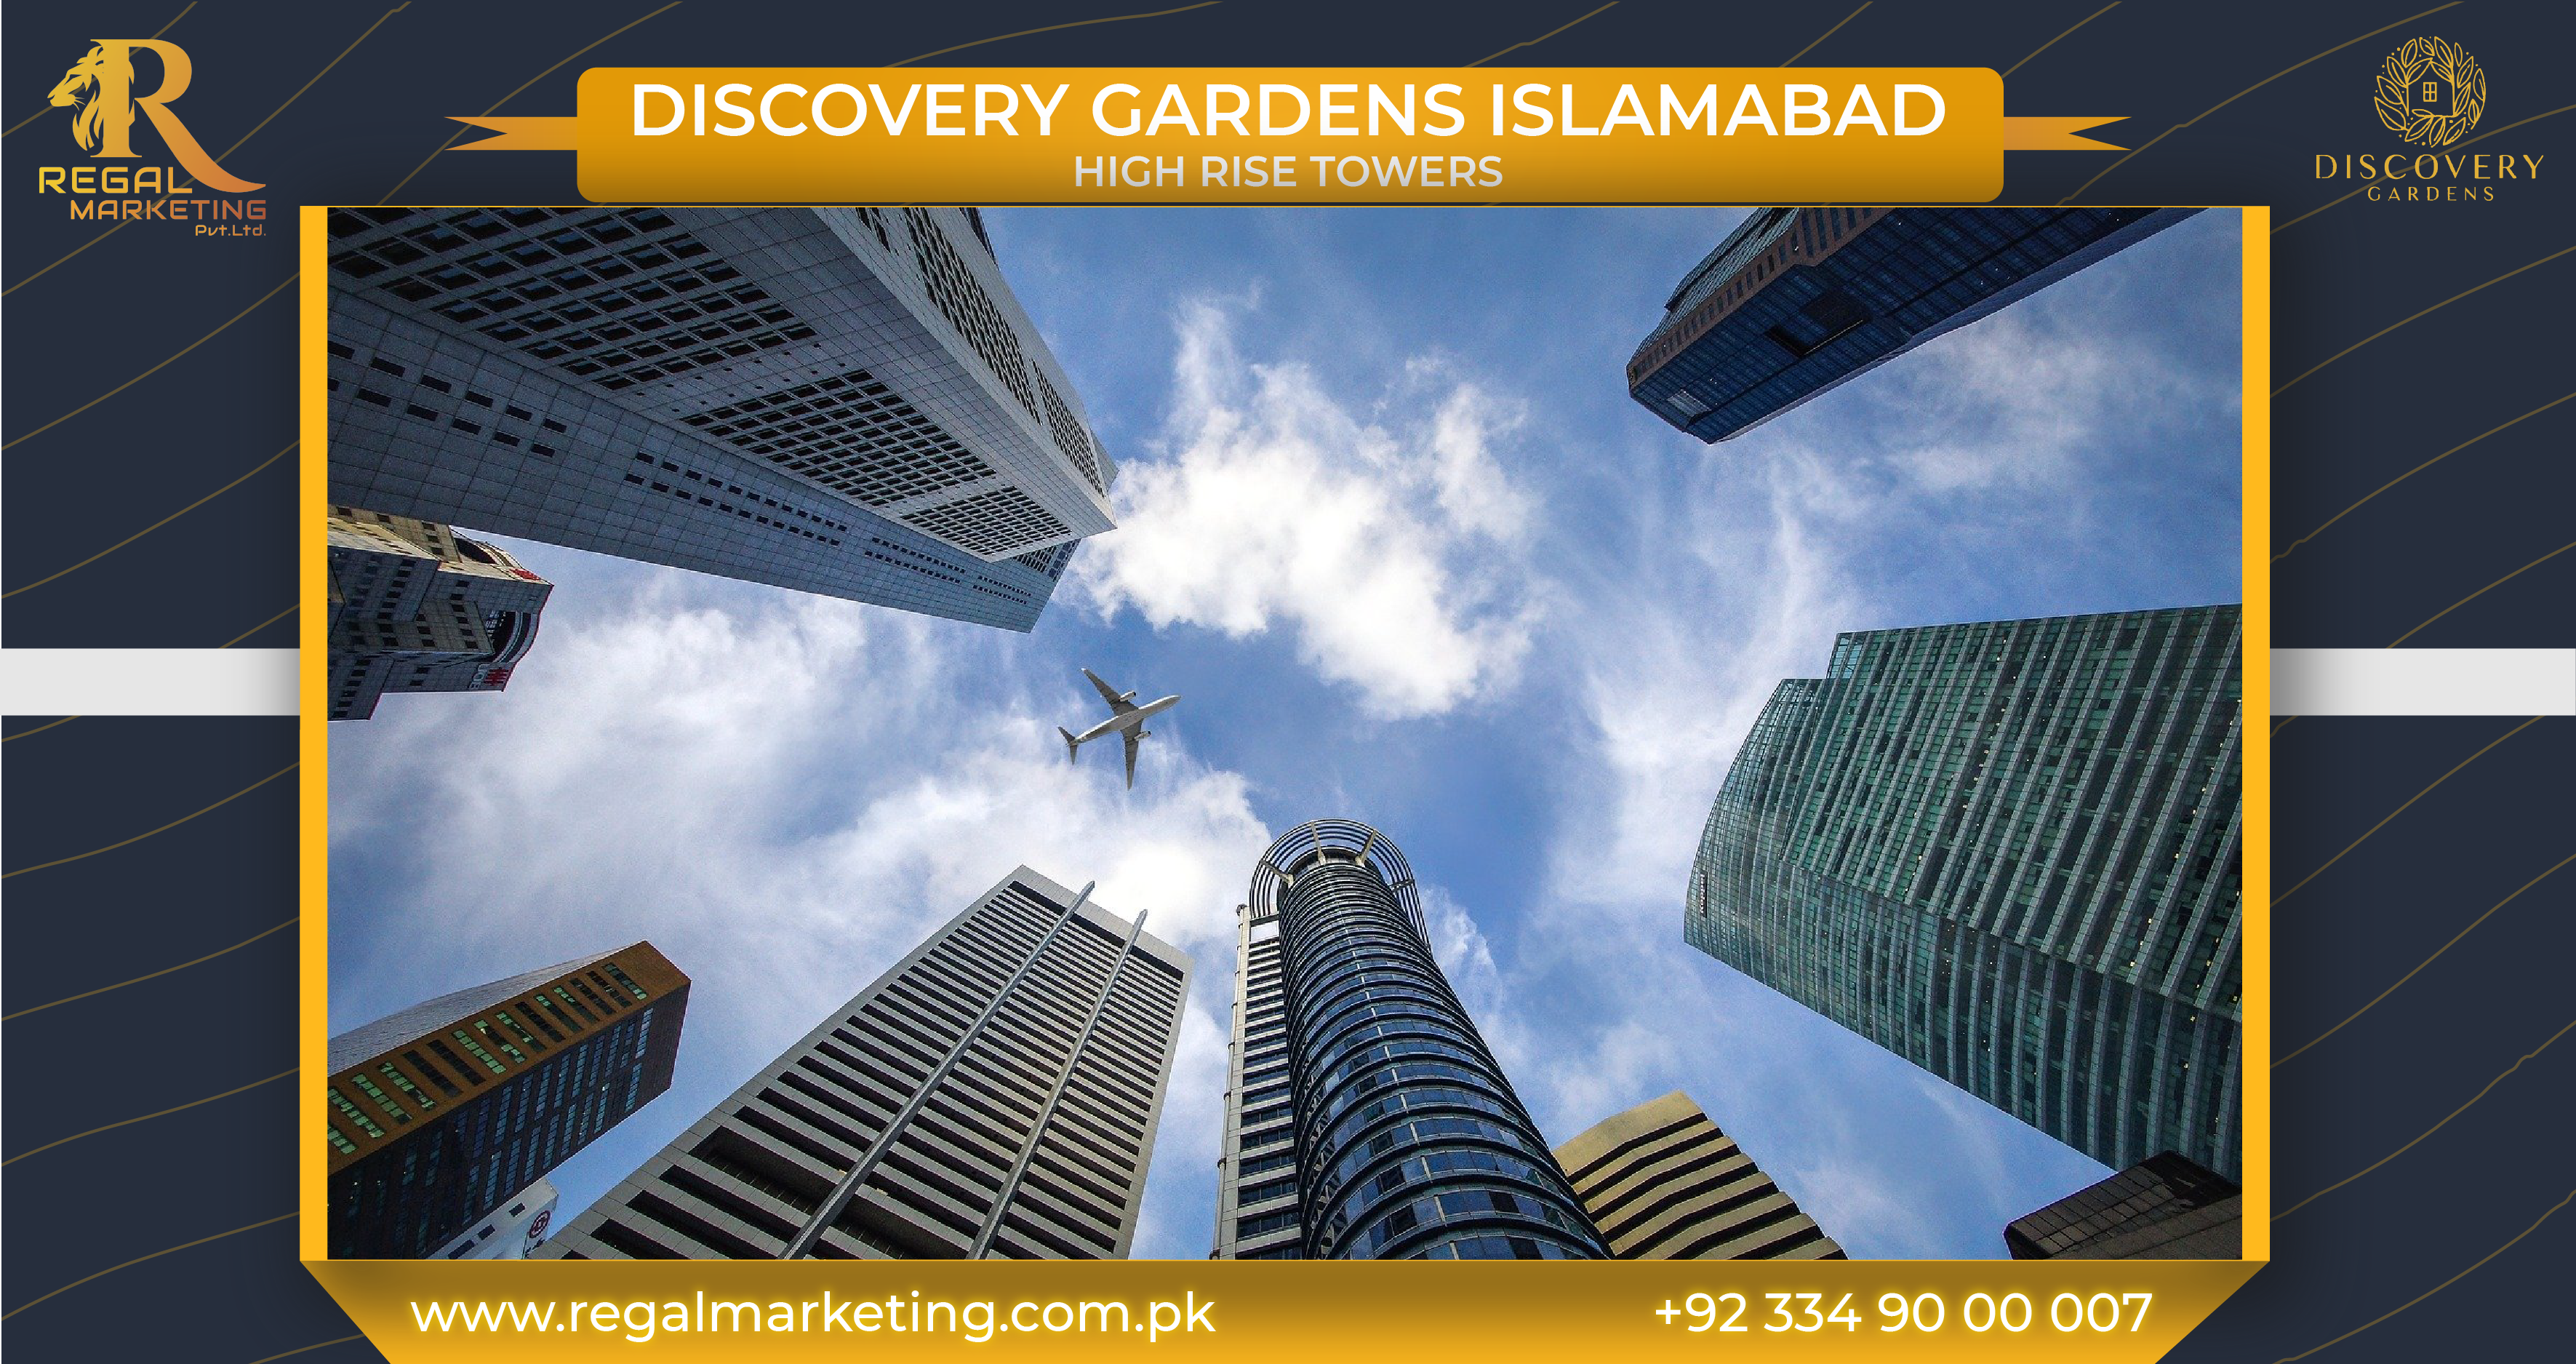 High Rise Towers in Discovery Gardens Islamabad